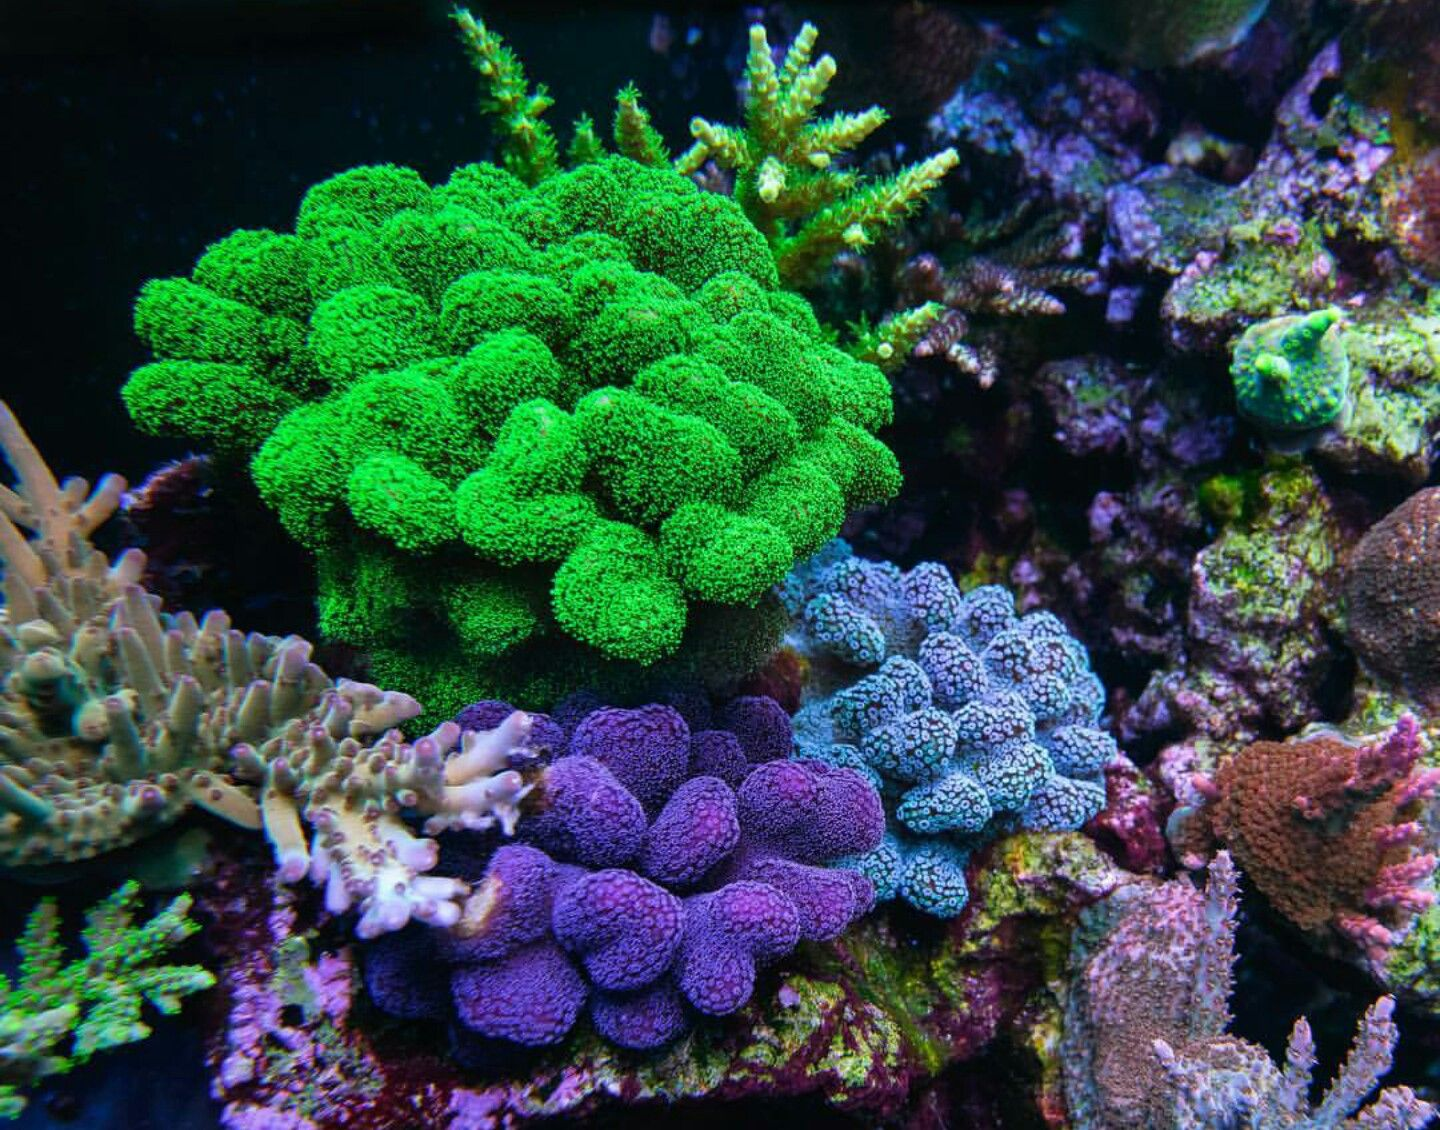 Saltwater Aquarium Fish - Find incredible deals on Saltwater Aquarium Fish  and Saltwater Aquarium Fish accessories. Let us show you how to save money  on ...